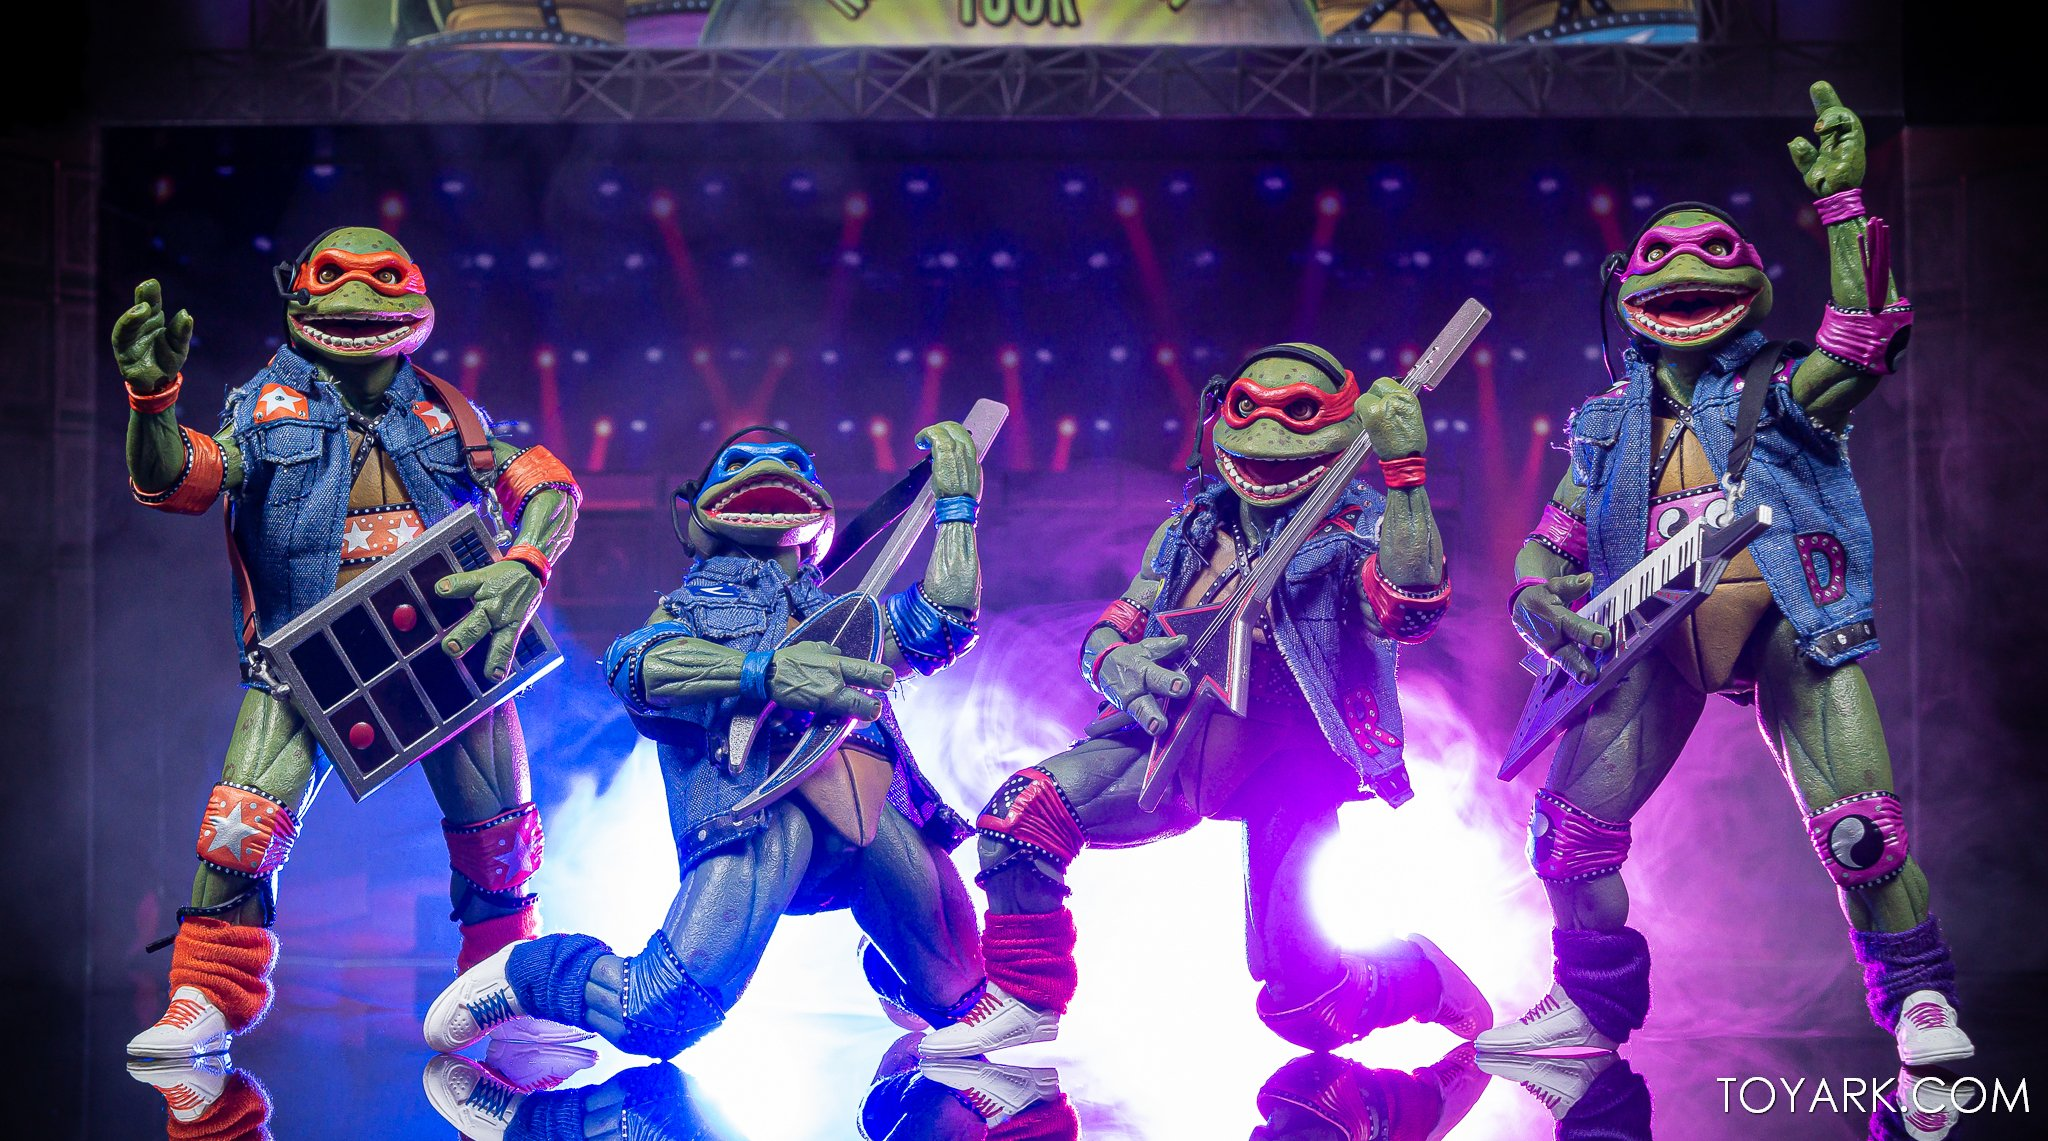 https://news.toyark.com/wp-content/uploads/sites/4/2020/07/SDCC-2020-TMNT-Musical-Mutagen-Tour-071.jpg